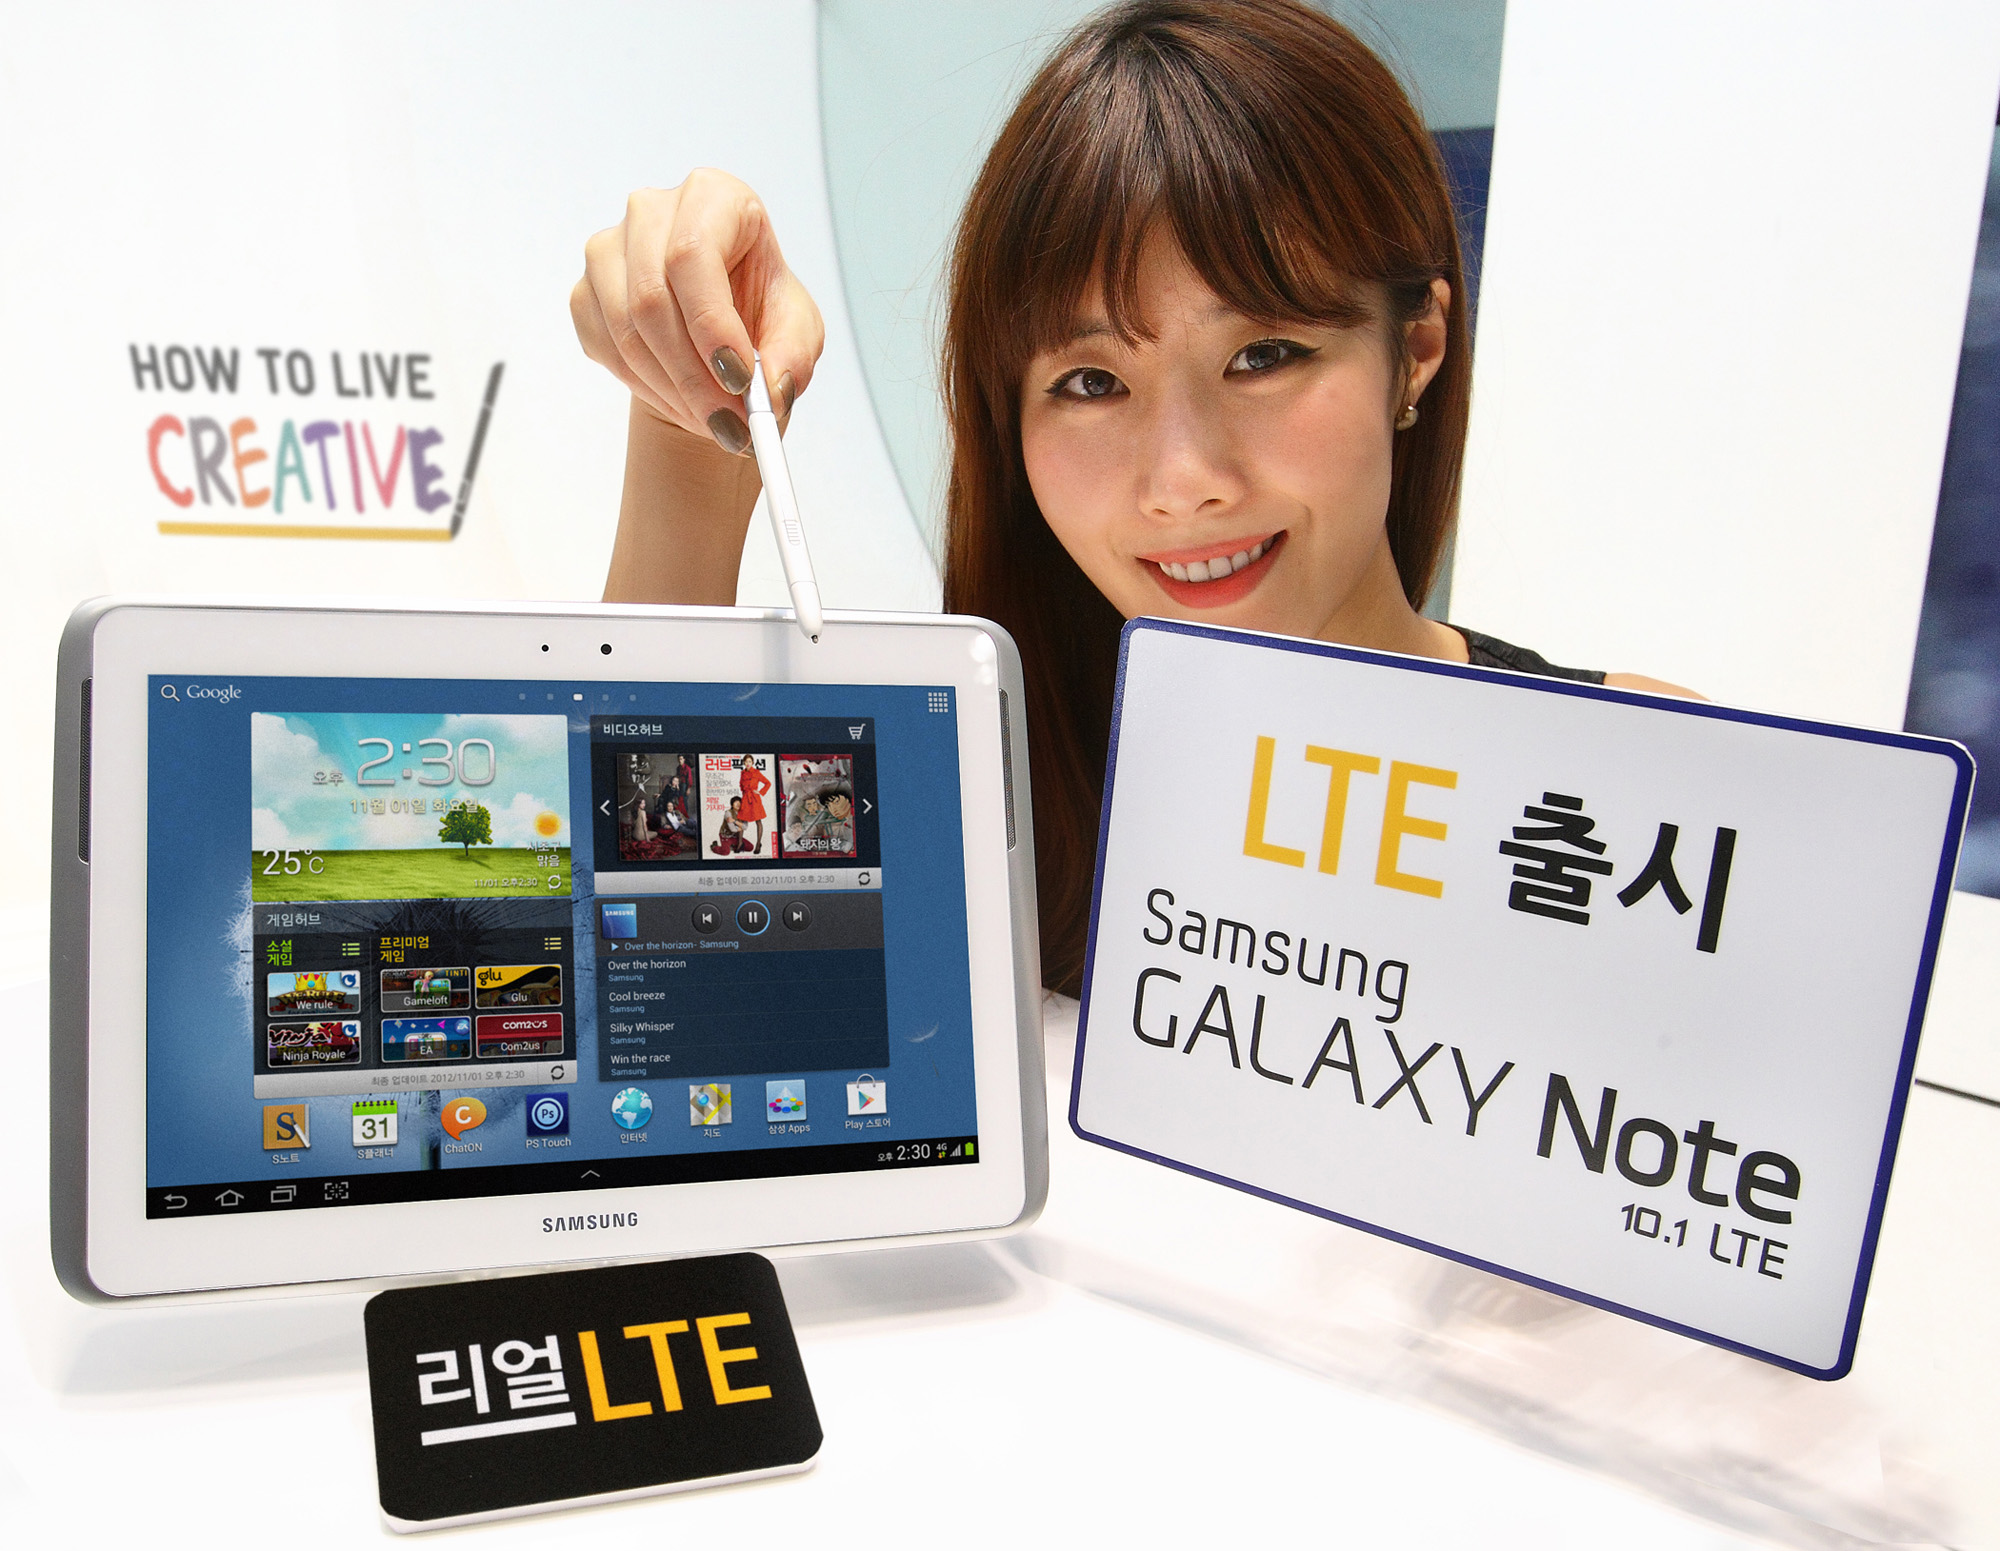 samsung_galaxy_note_10-1_lte_jelly_bean